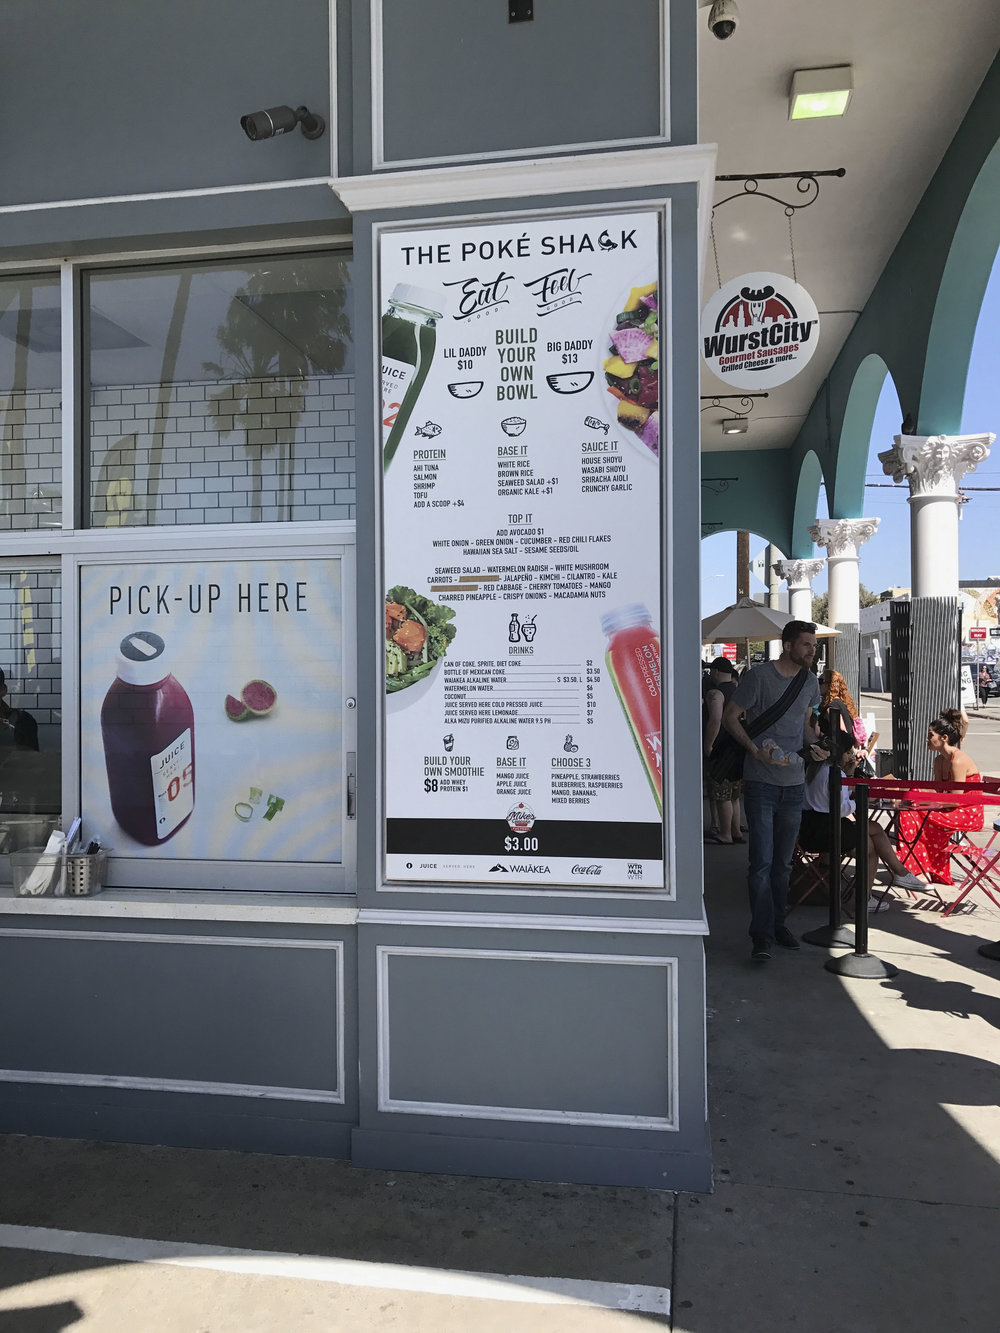 The Poke Shack Venice Monica Los Angeles_1.JPG